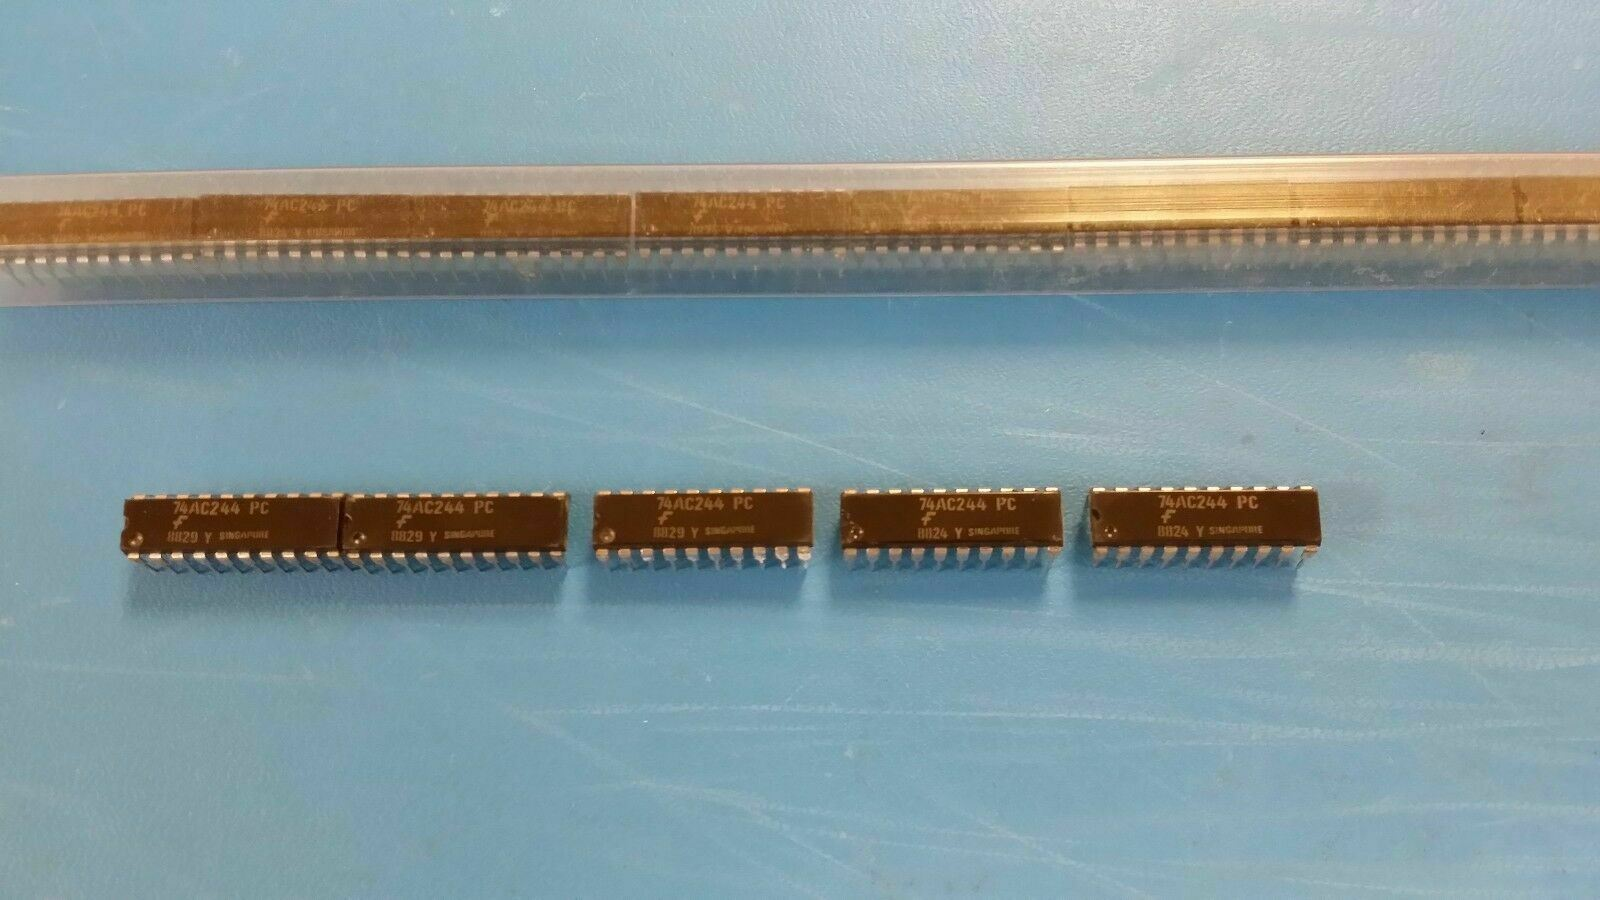 SK3596 Operational Amplifier NTE976 Integrated Circuit ECG976 1 PC